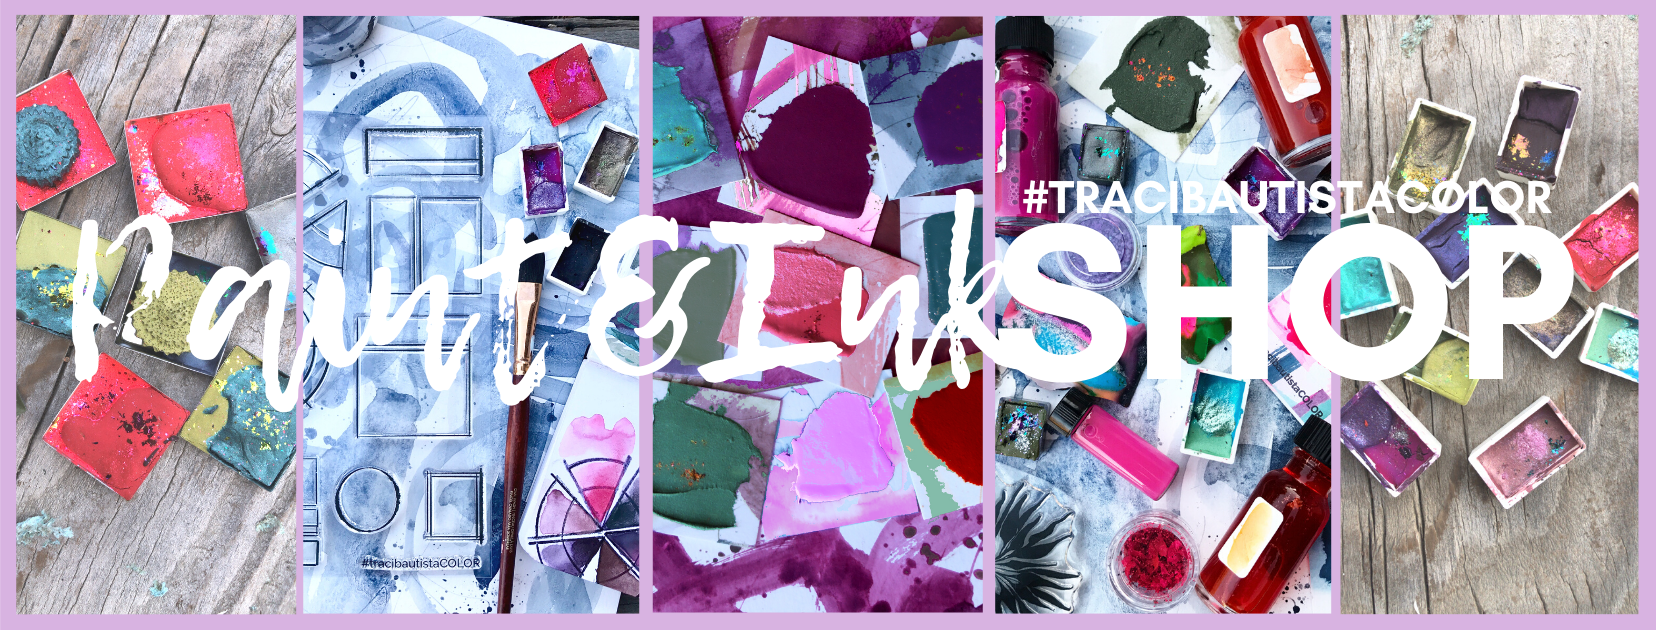 #tracibautistaCOLOR paints + inks